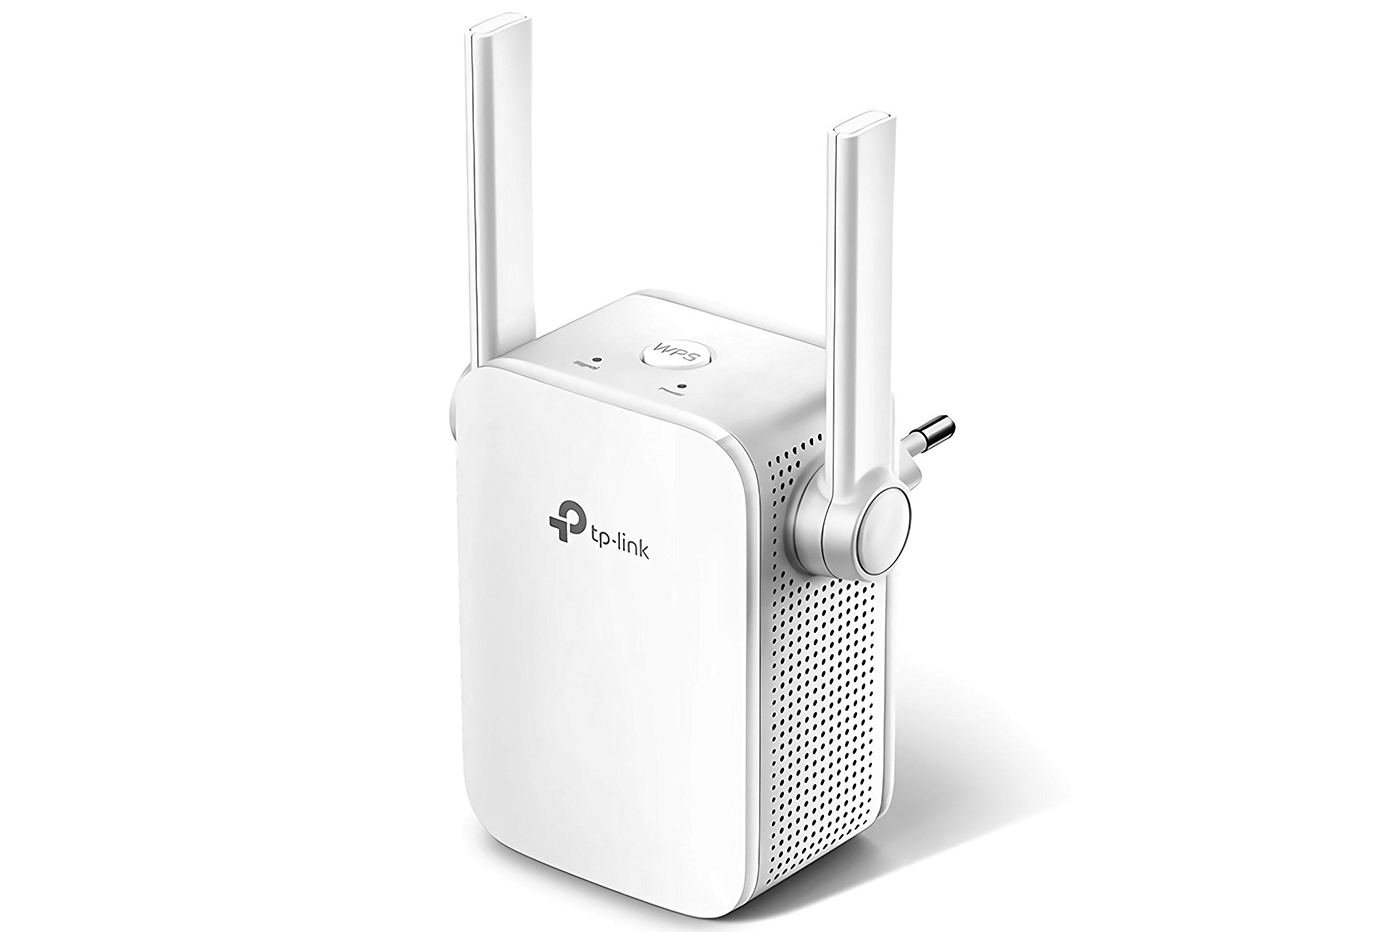 Ripetitore universale wifi 2 antenne 300 Mbps range extender TL-WA855RE TP-LINK